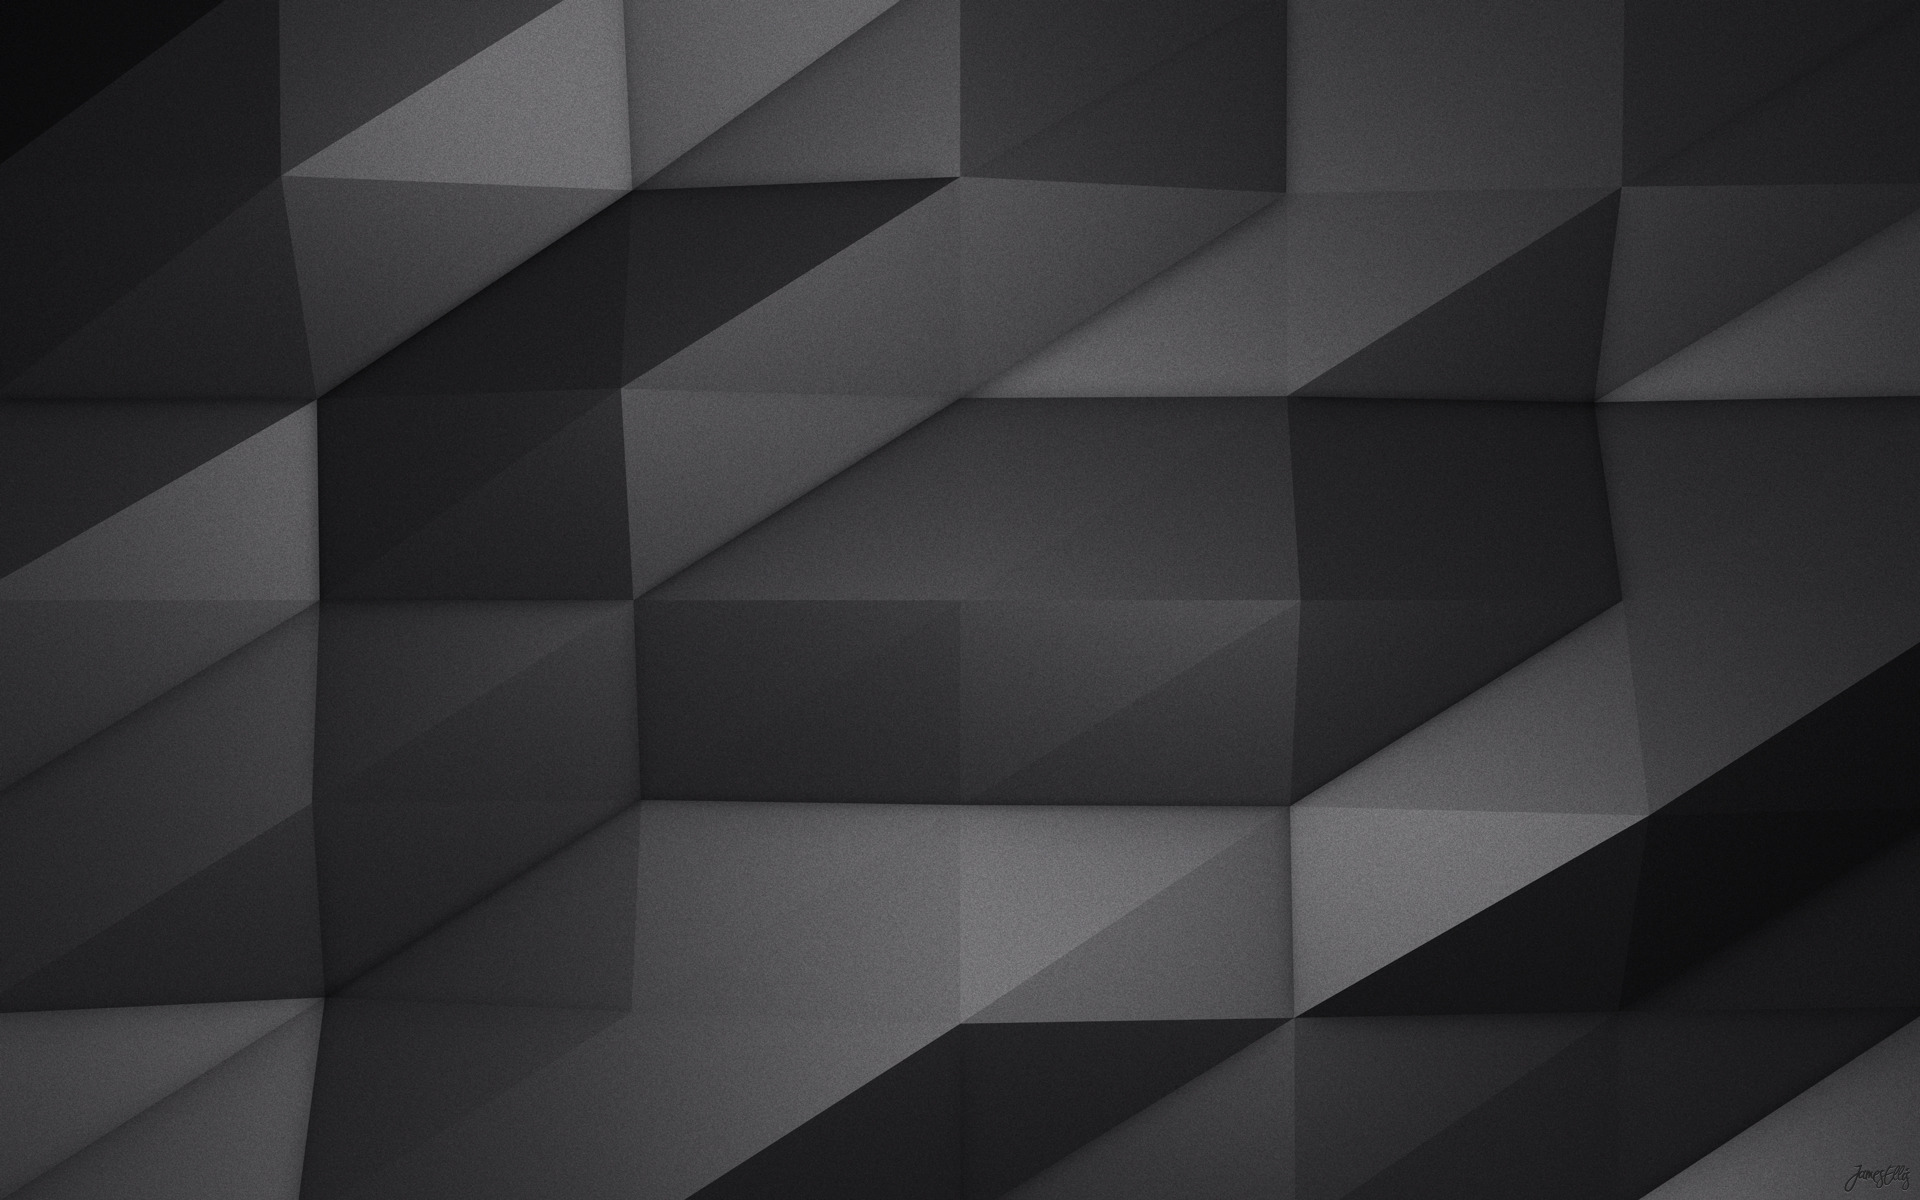 Texture, color, black, gray, shapes, geometry, effects, graphics